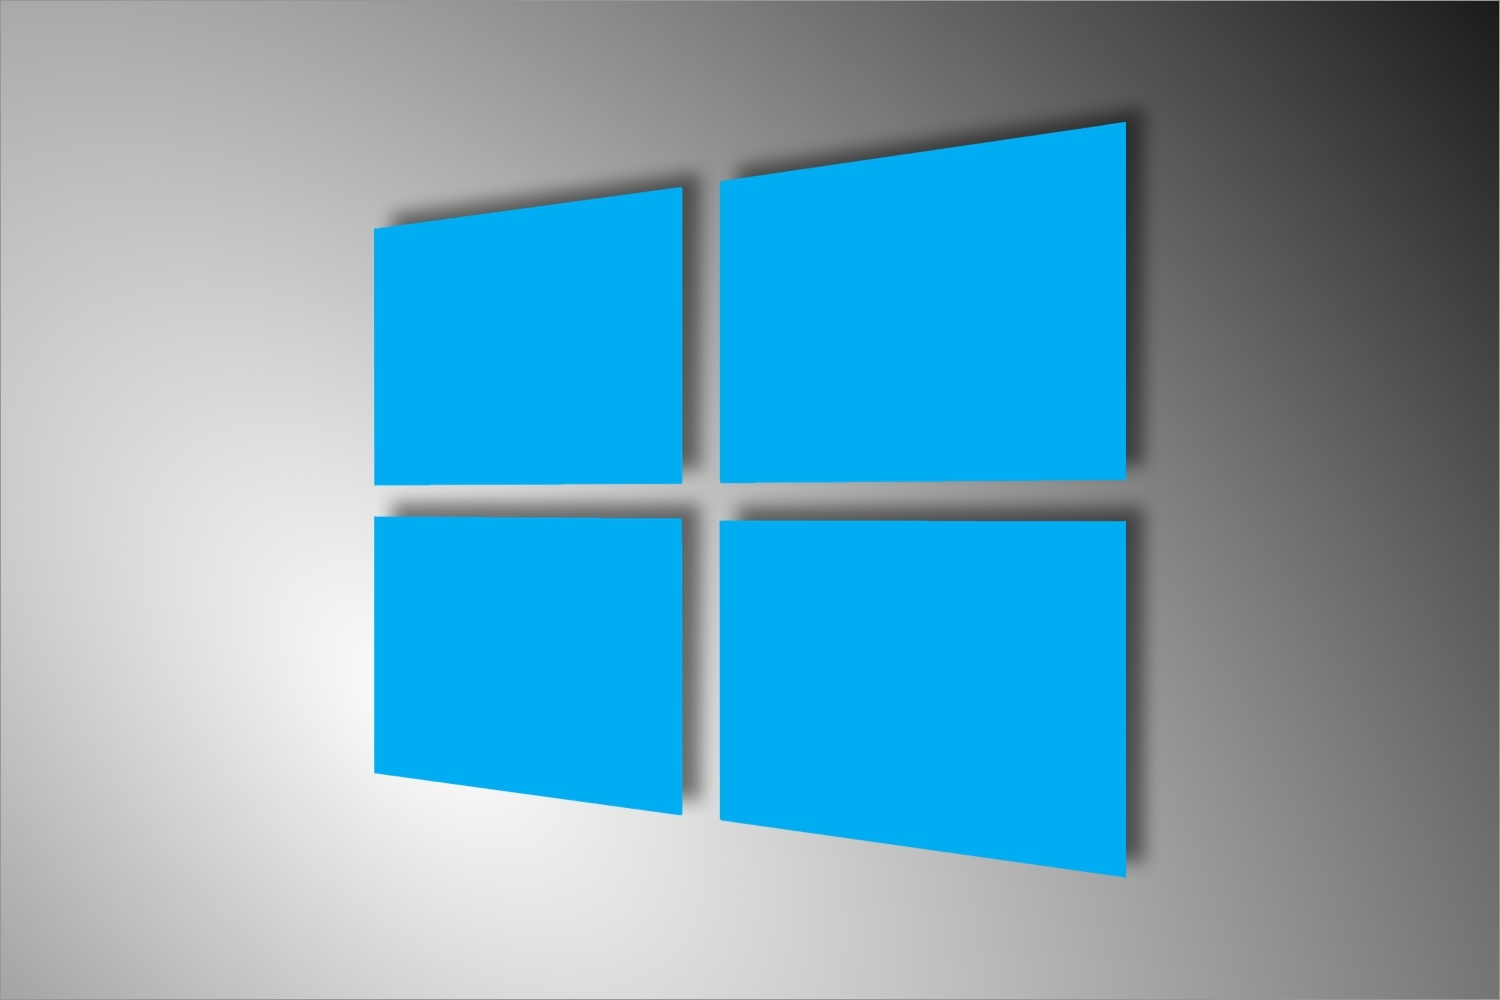 Leaked: Windows 9 Footage!